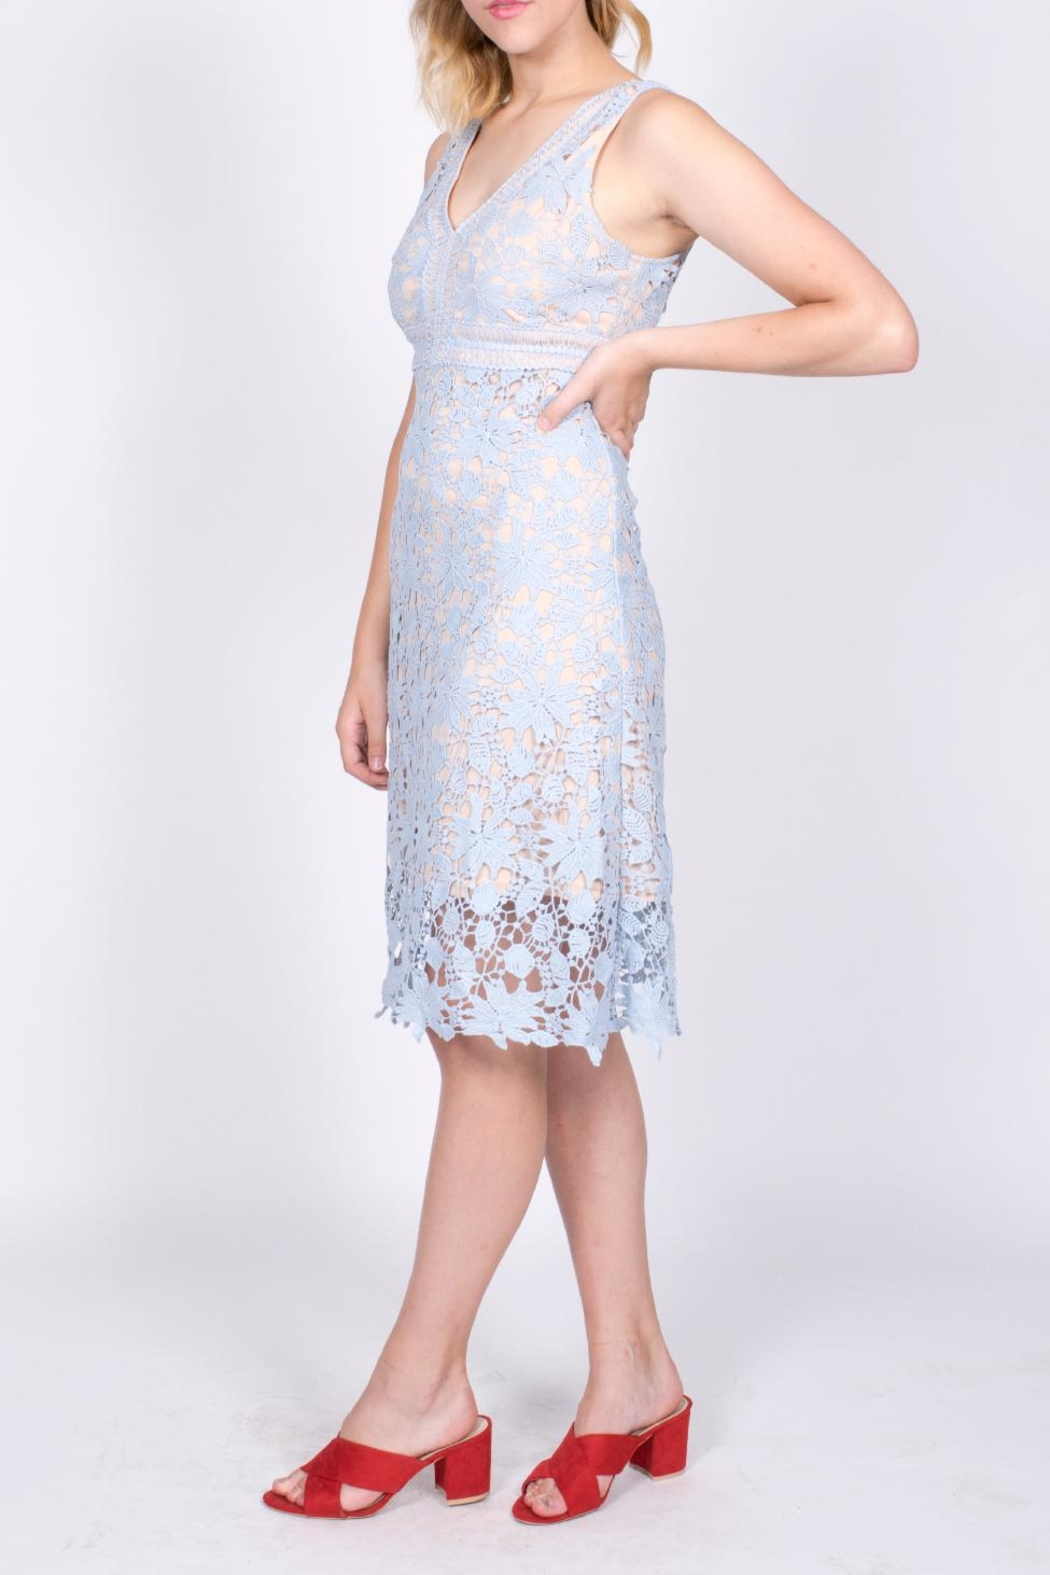 Mai Tai Blue Lace Dress - Side Cropped Image